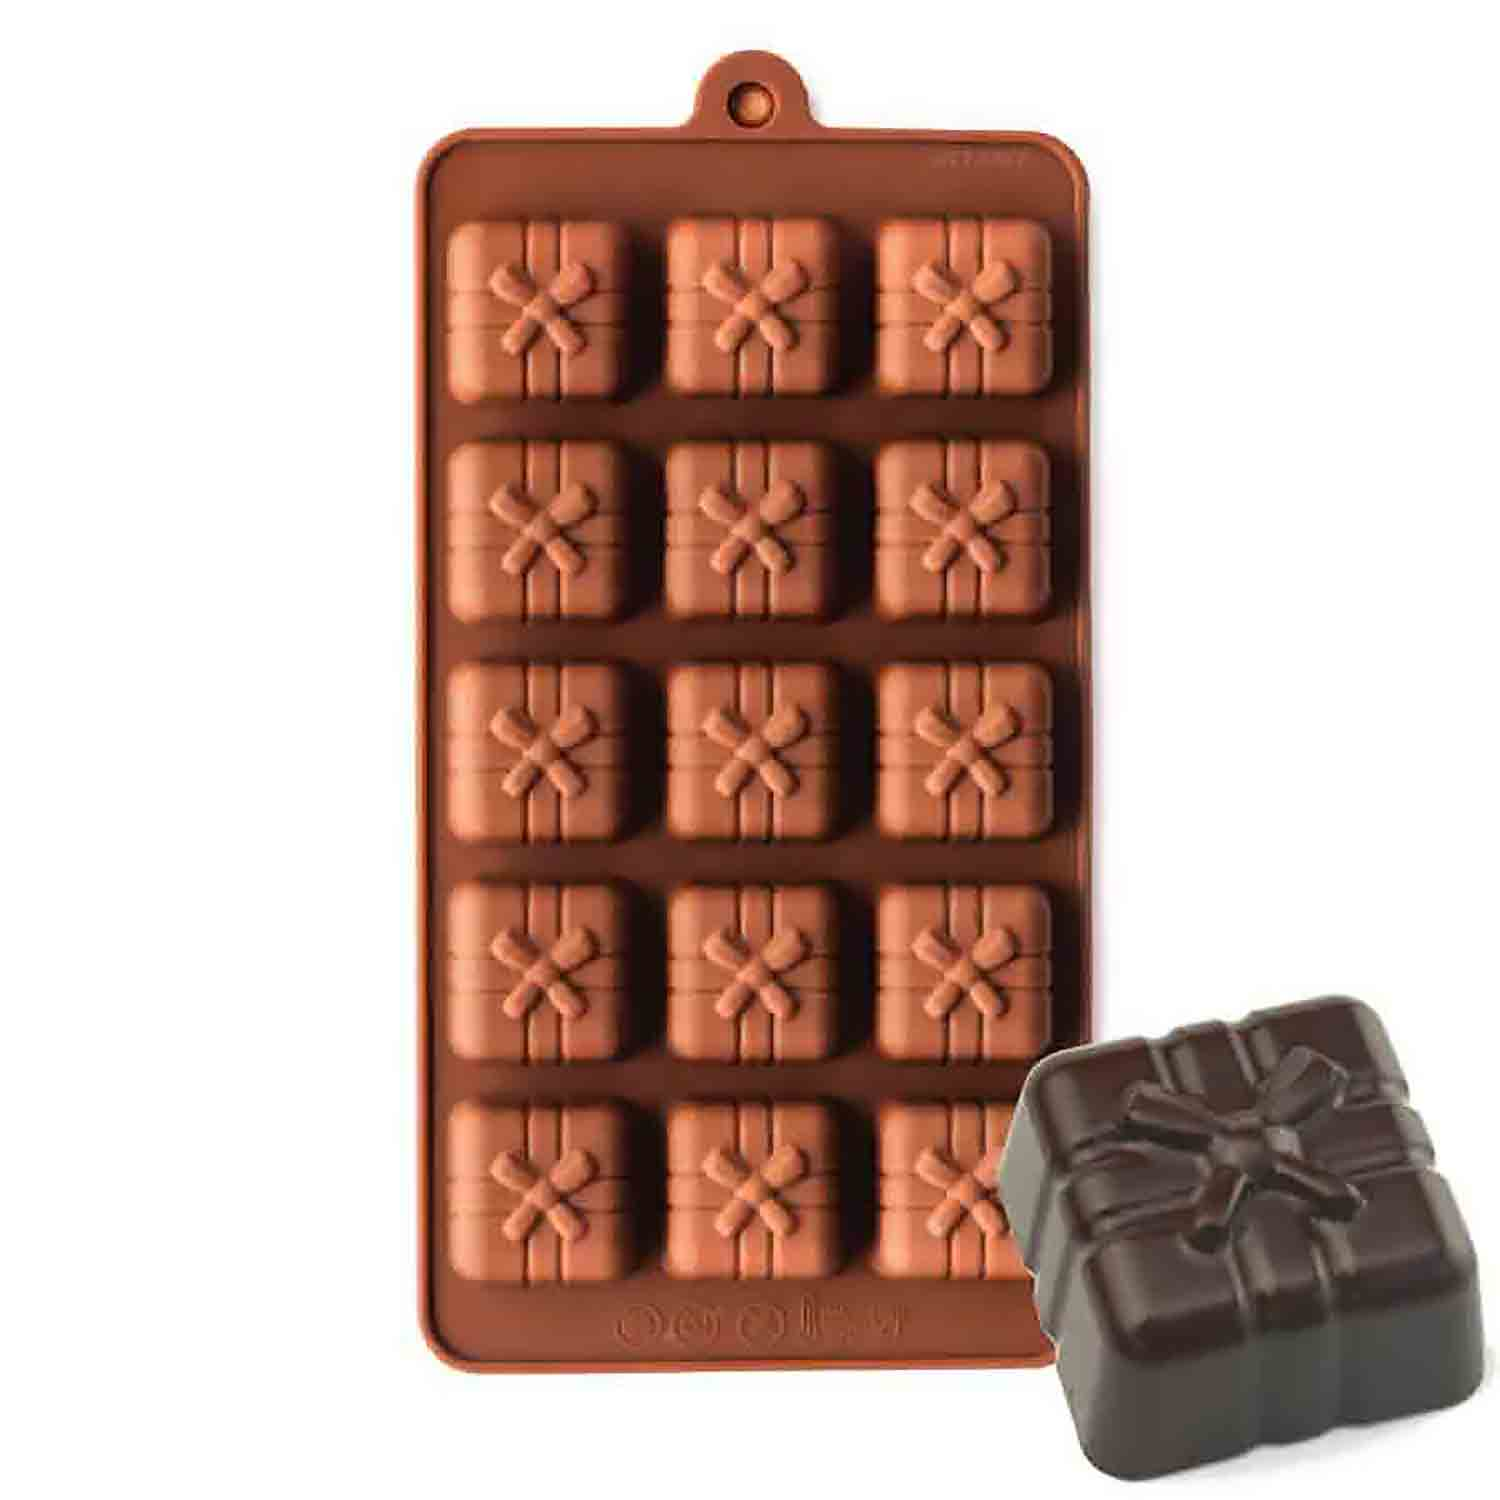 Gift Box Silicone Chocolate Candy Mold